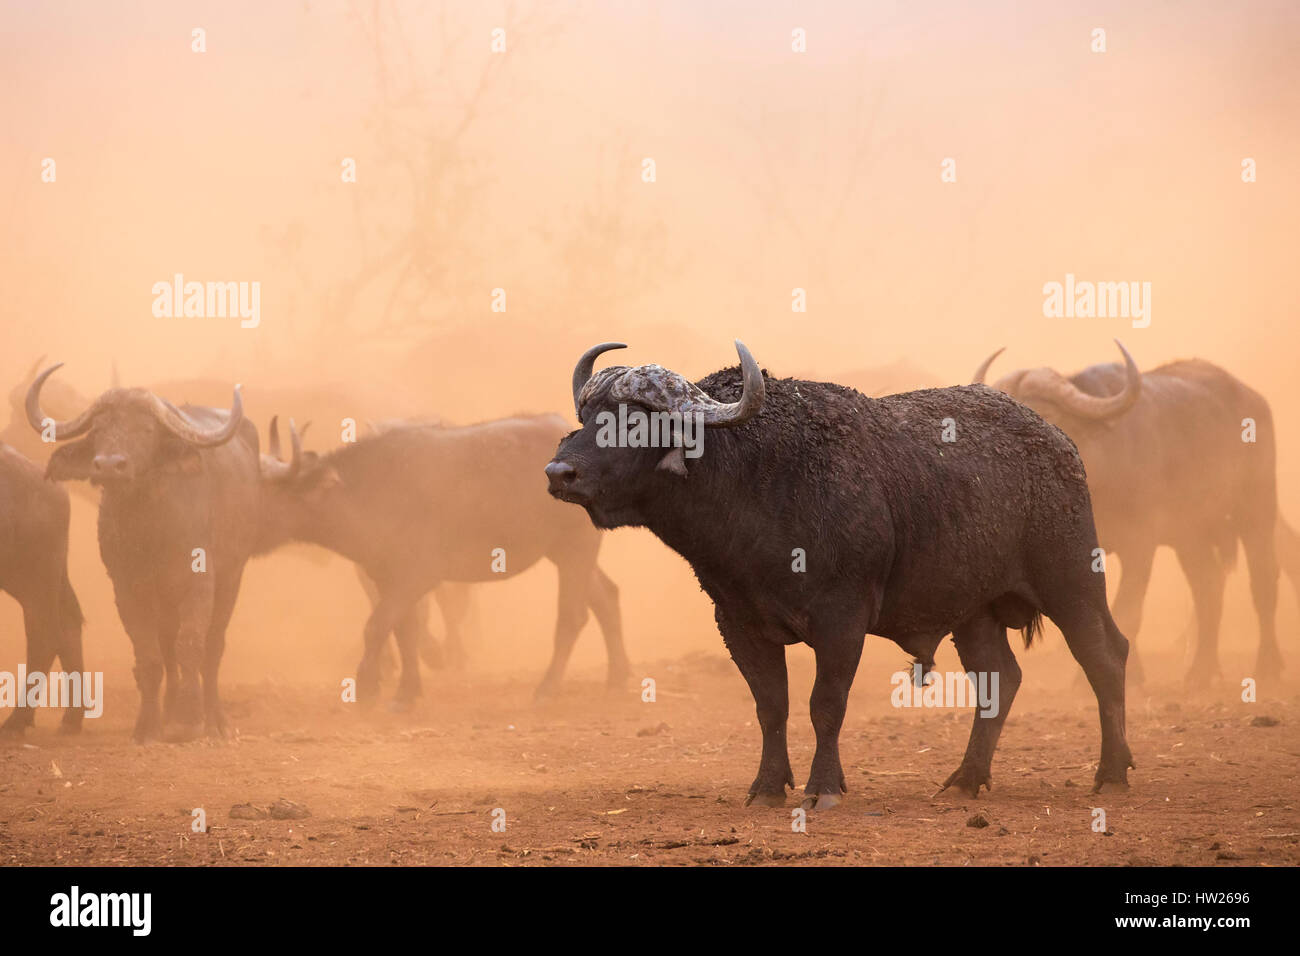 Cape buffalo (Syncerus caffer) herd, Zimanga private game reserve, KwaZulu-Natal, South Africa, September 2016 Stock Photo